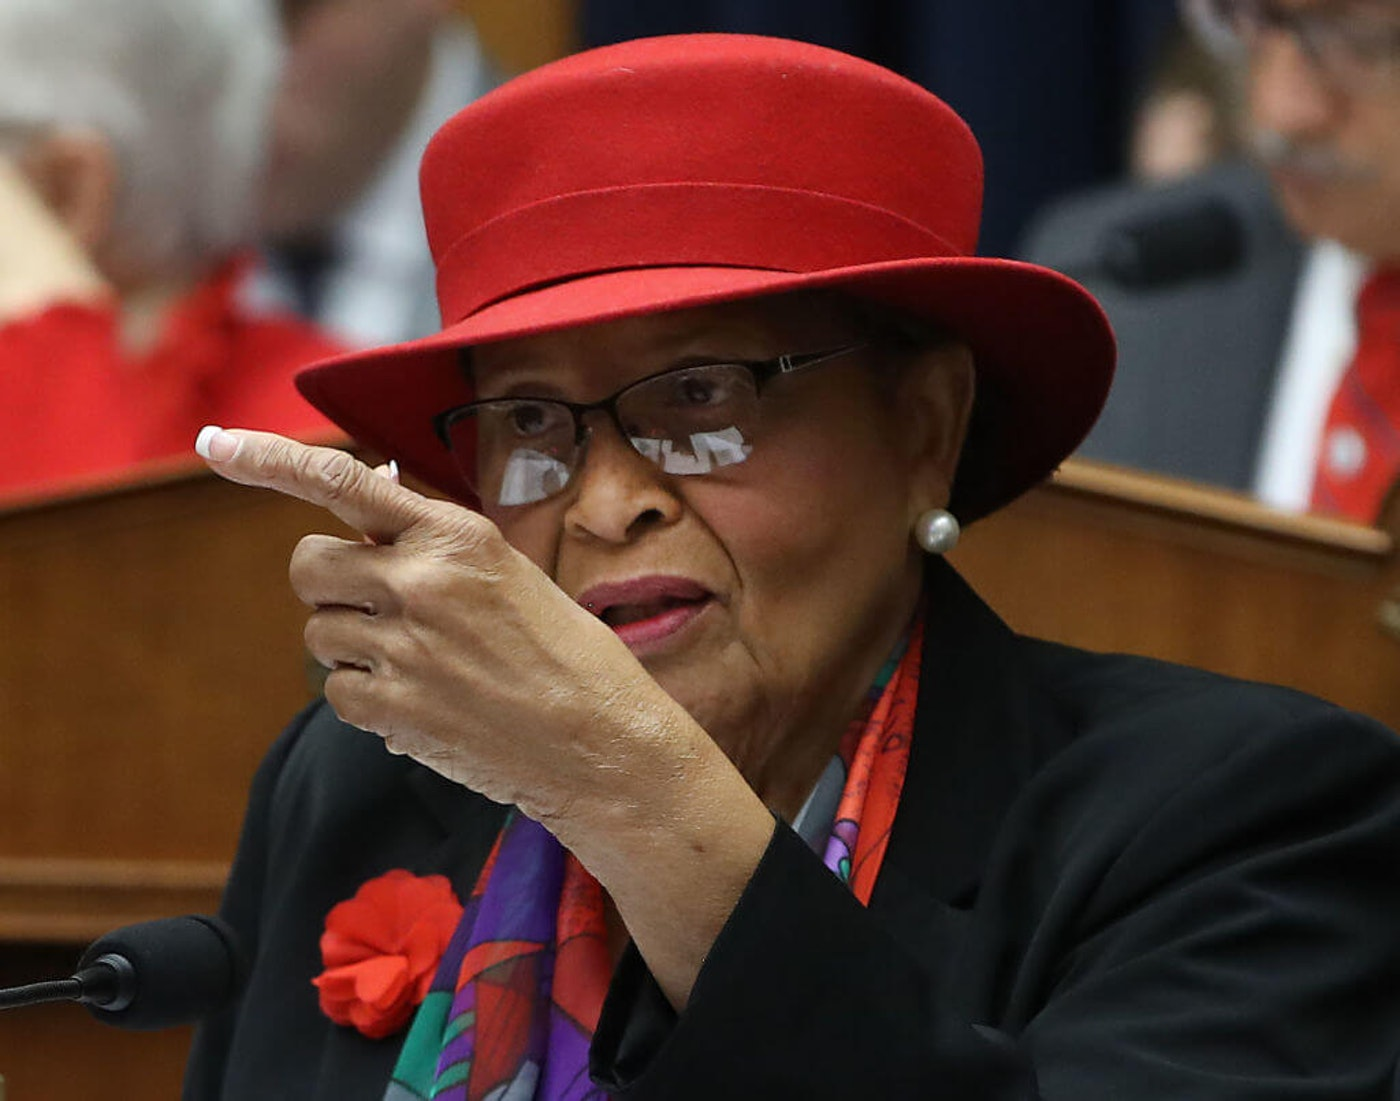 Rep. Alma Adams (D-NC) speaks during a House committee in 2019. With many families in her district possibly facing eviction in a matter of days, Adams has been calling on state leaders in North Carolina to extend the housing moratorium a month or more. (Photo by Mark Wilson/Getty Images)